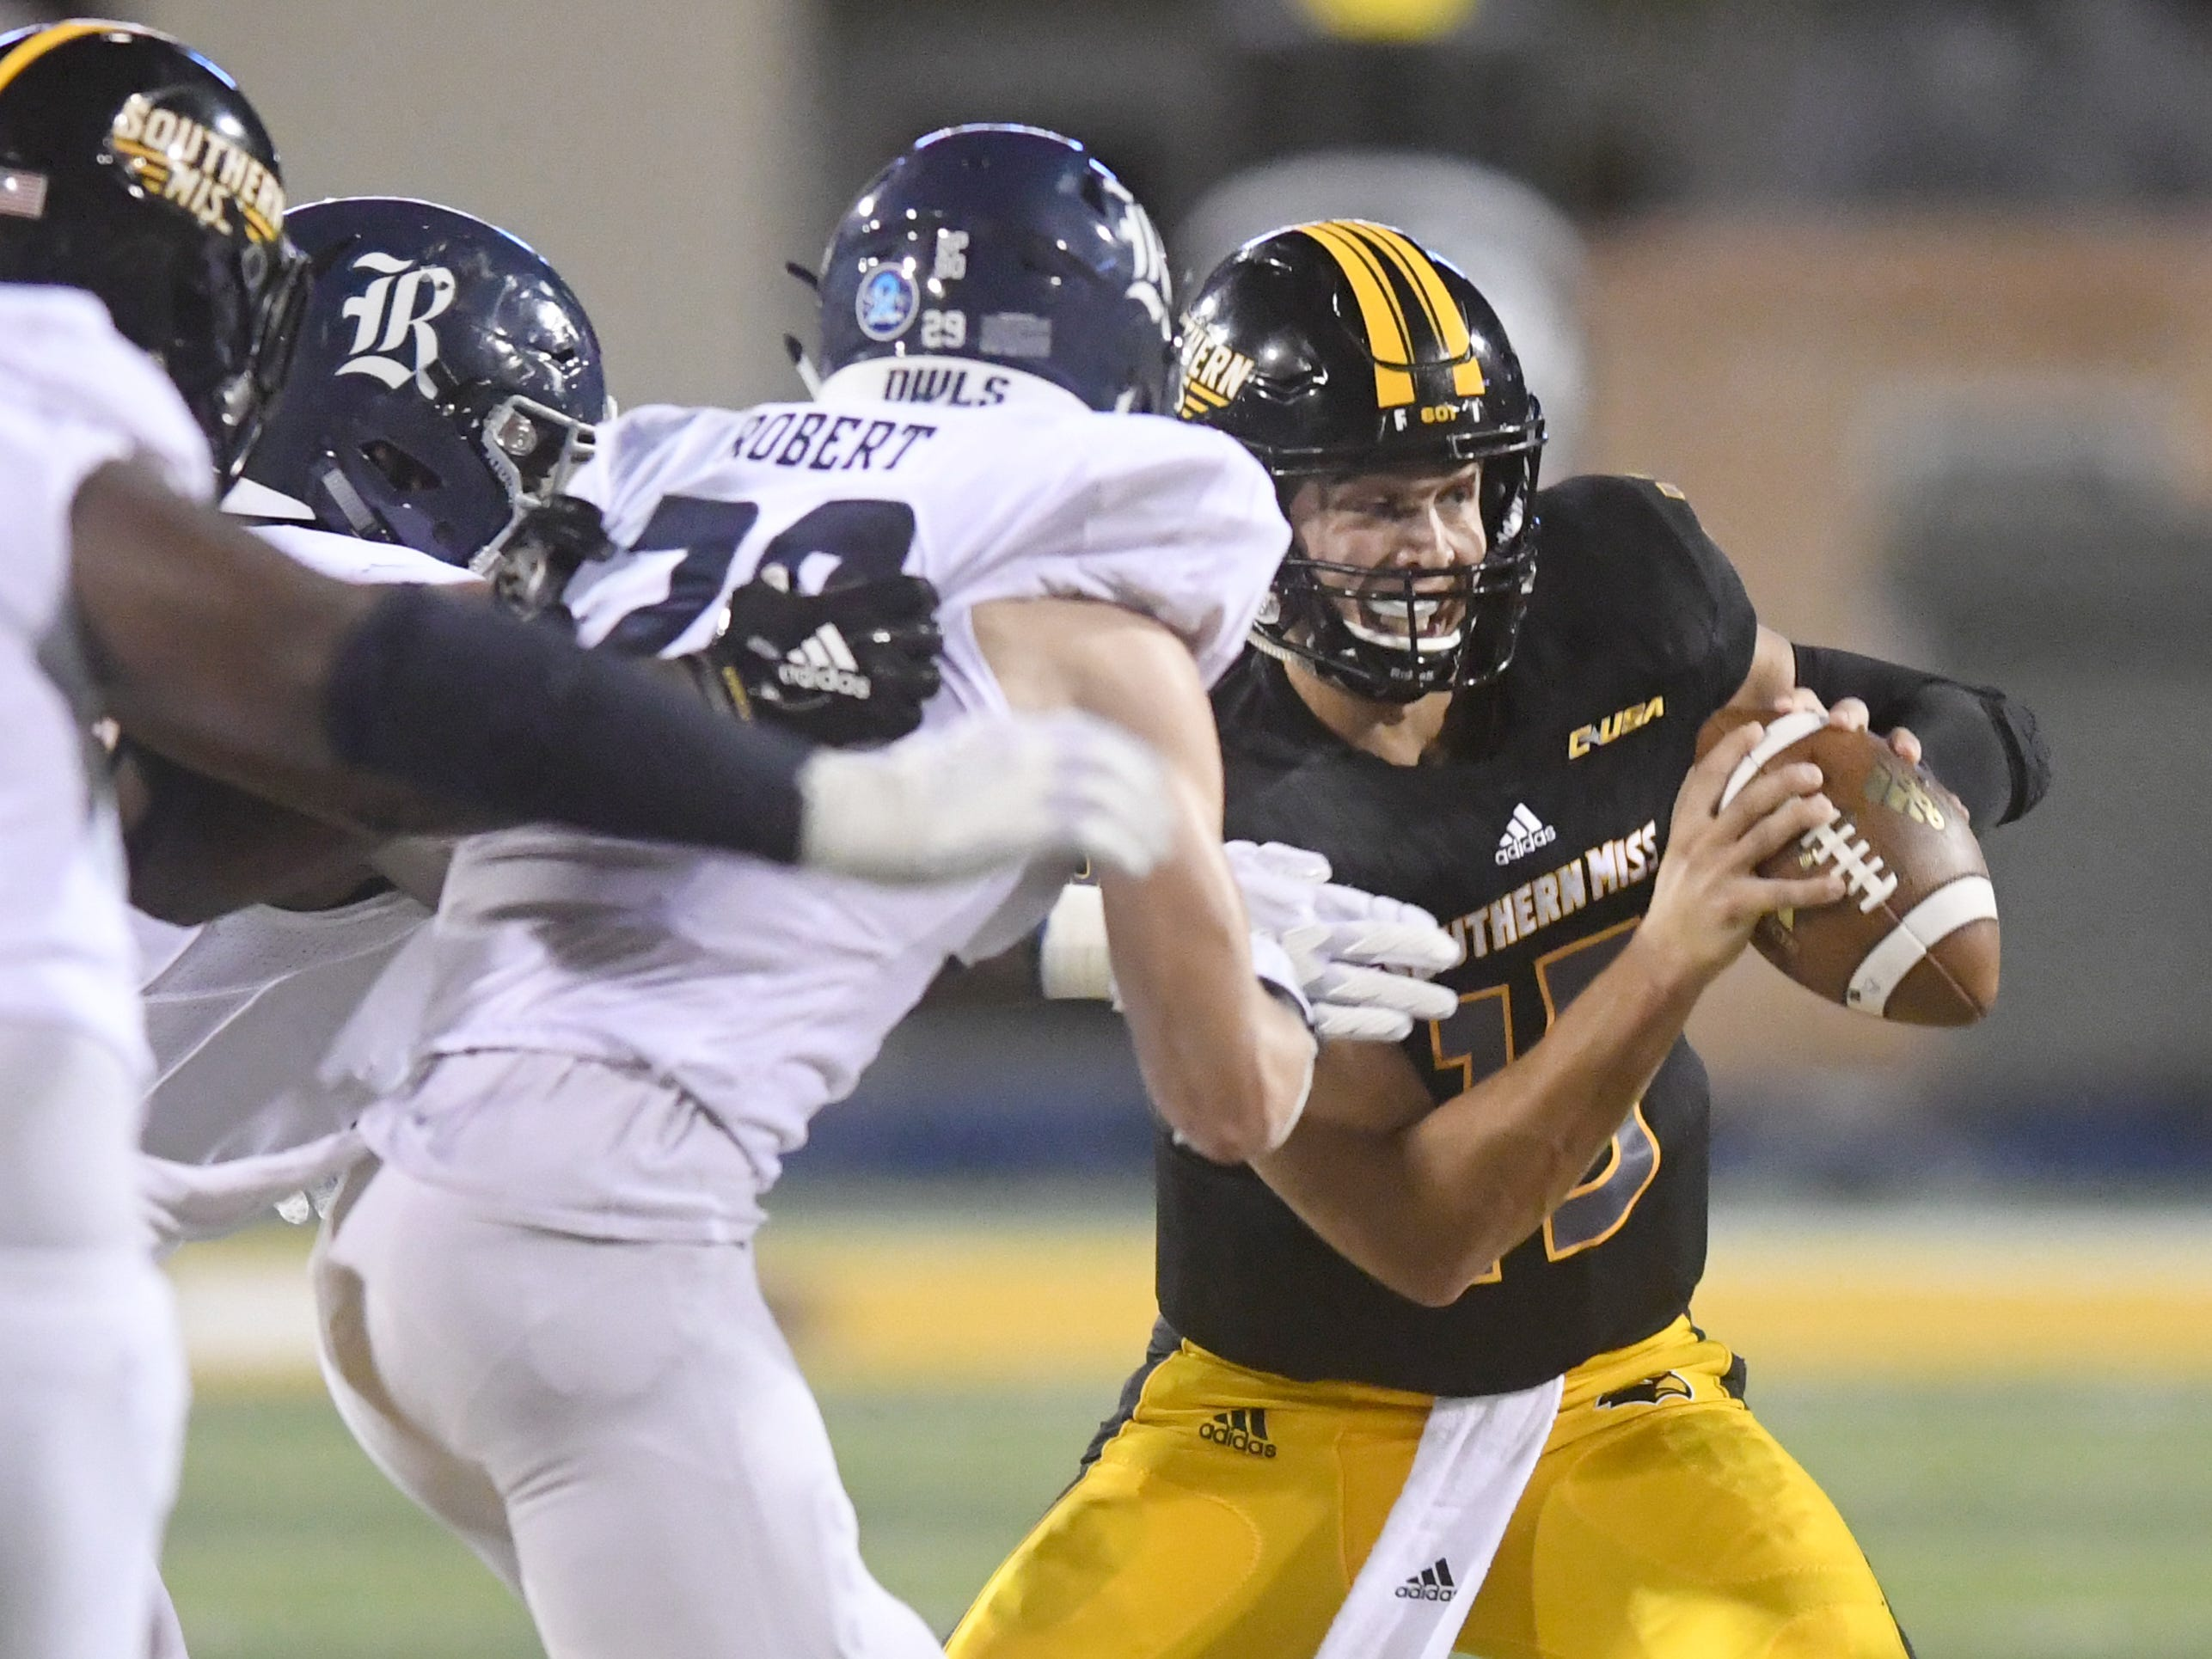 Southern Miss quarterback Jack Abraham runs from a tackle in a game against Rice at M.M. Roberts Stadium on Saturday, September 22, 2018.